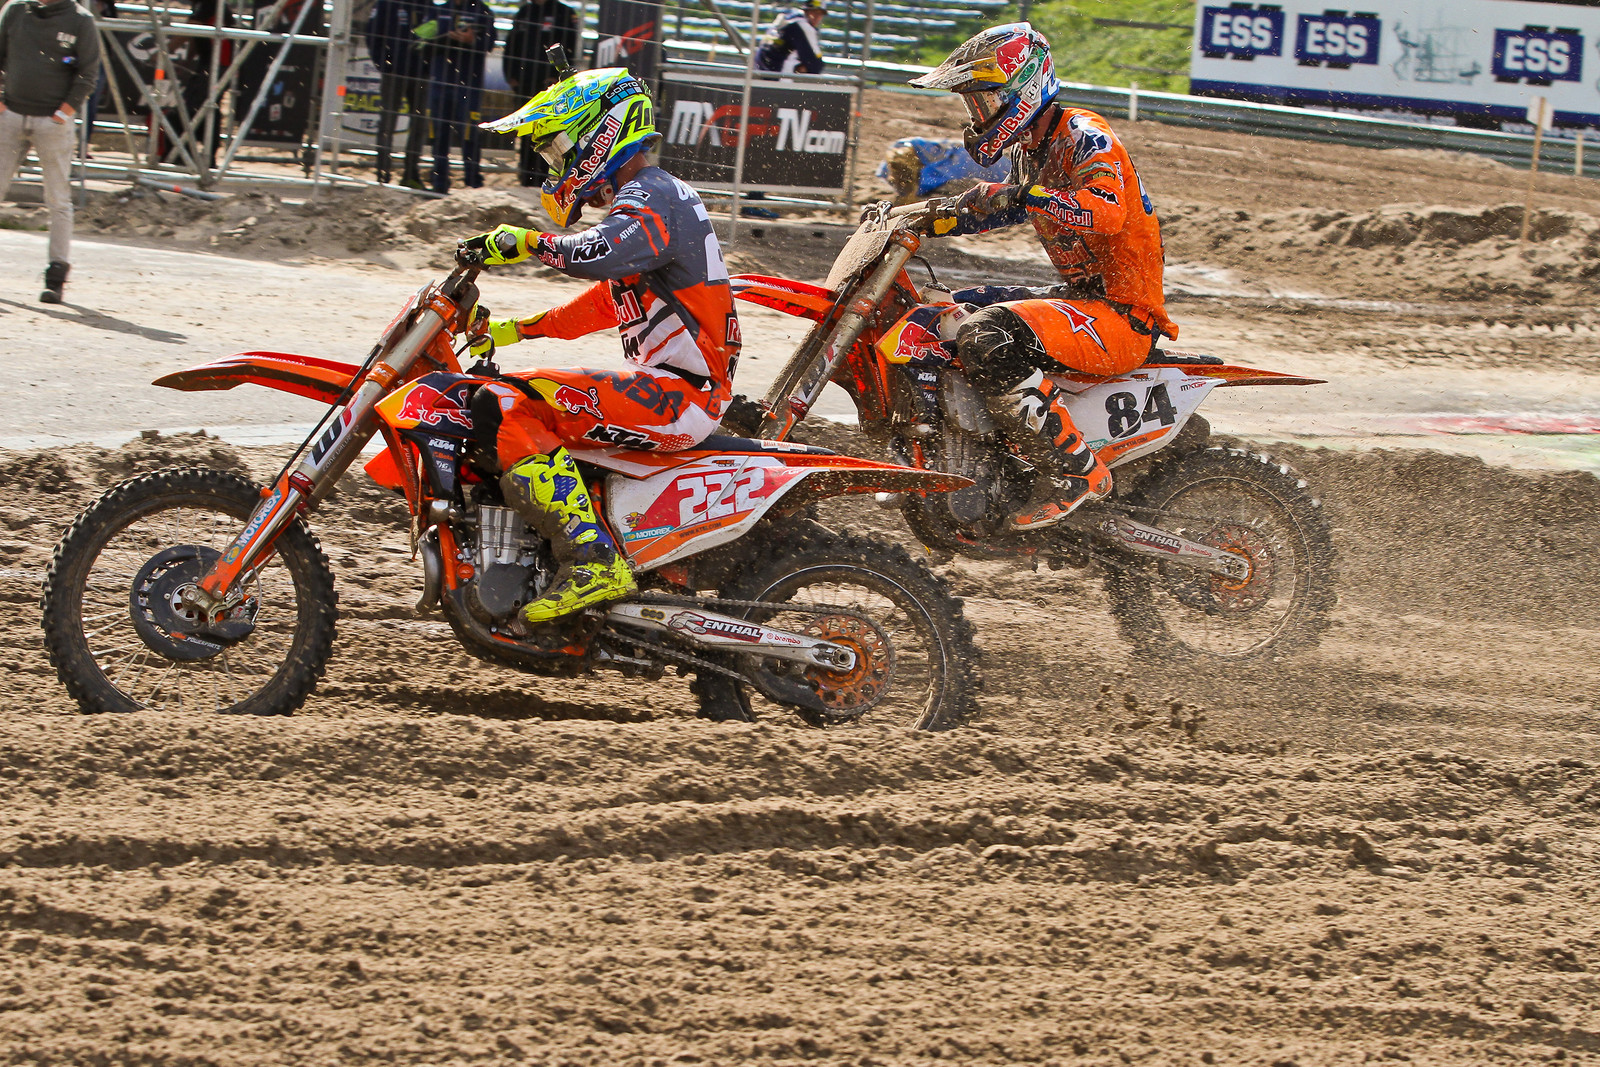 Antonio Cairoli vs Jeffrey Herlings - ayearinmx - Motocross Pictures - Vital MX